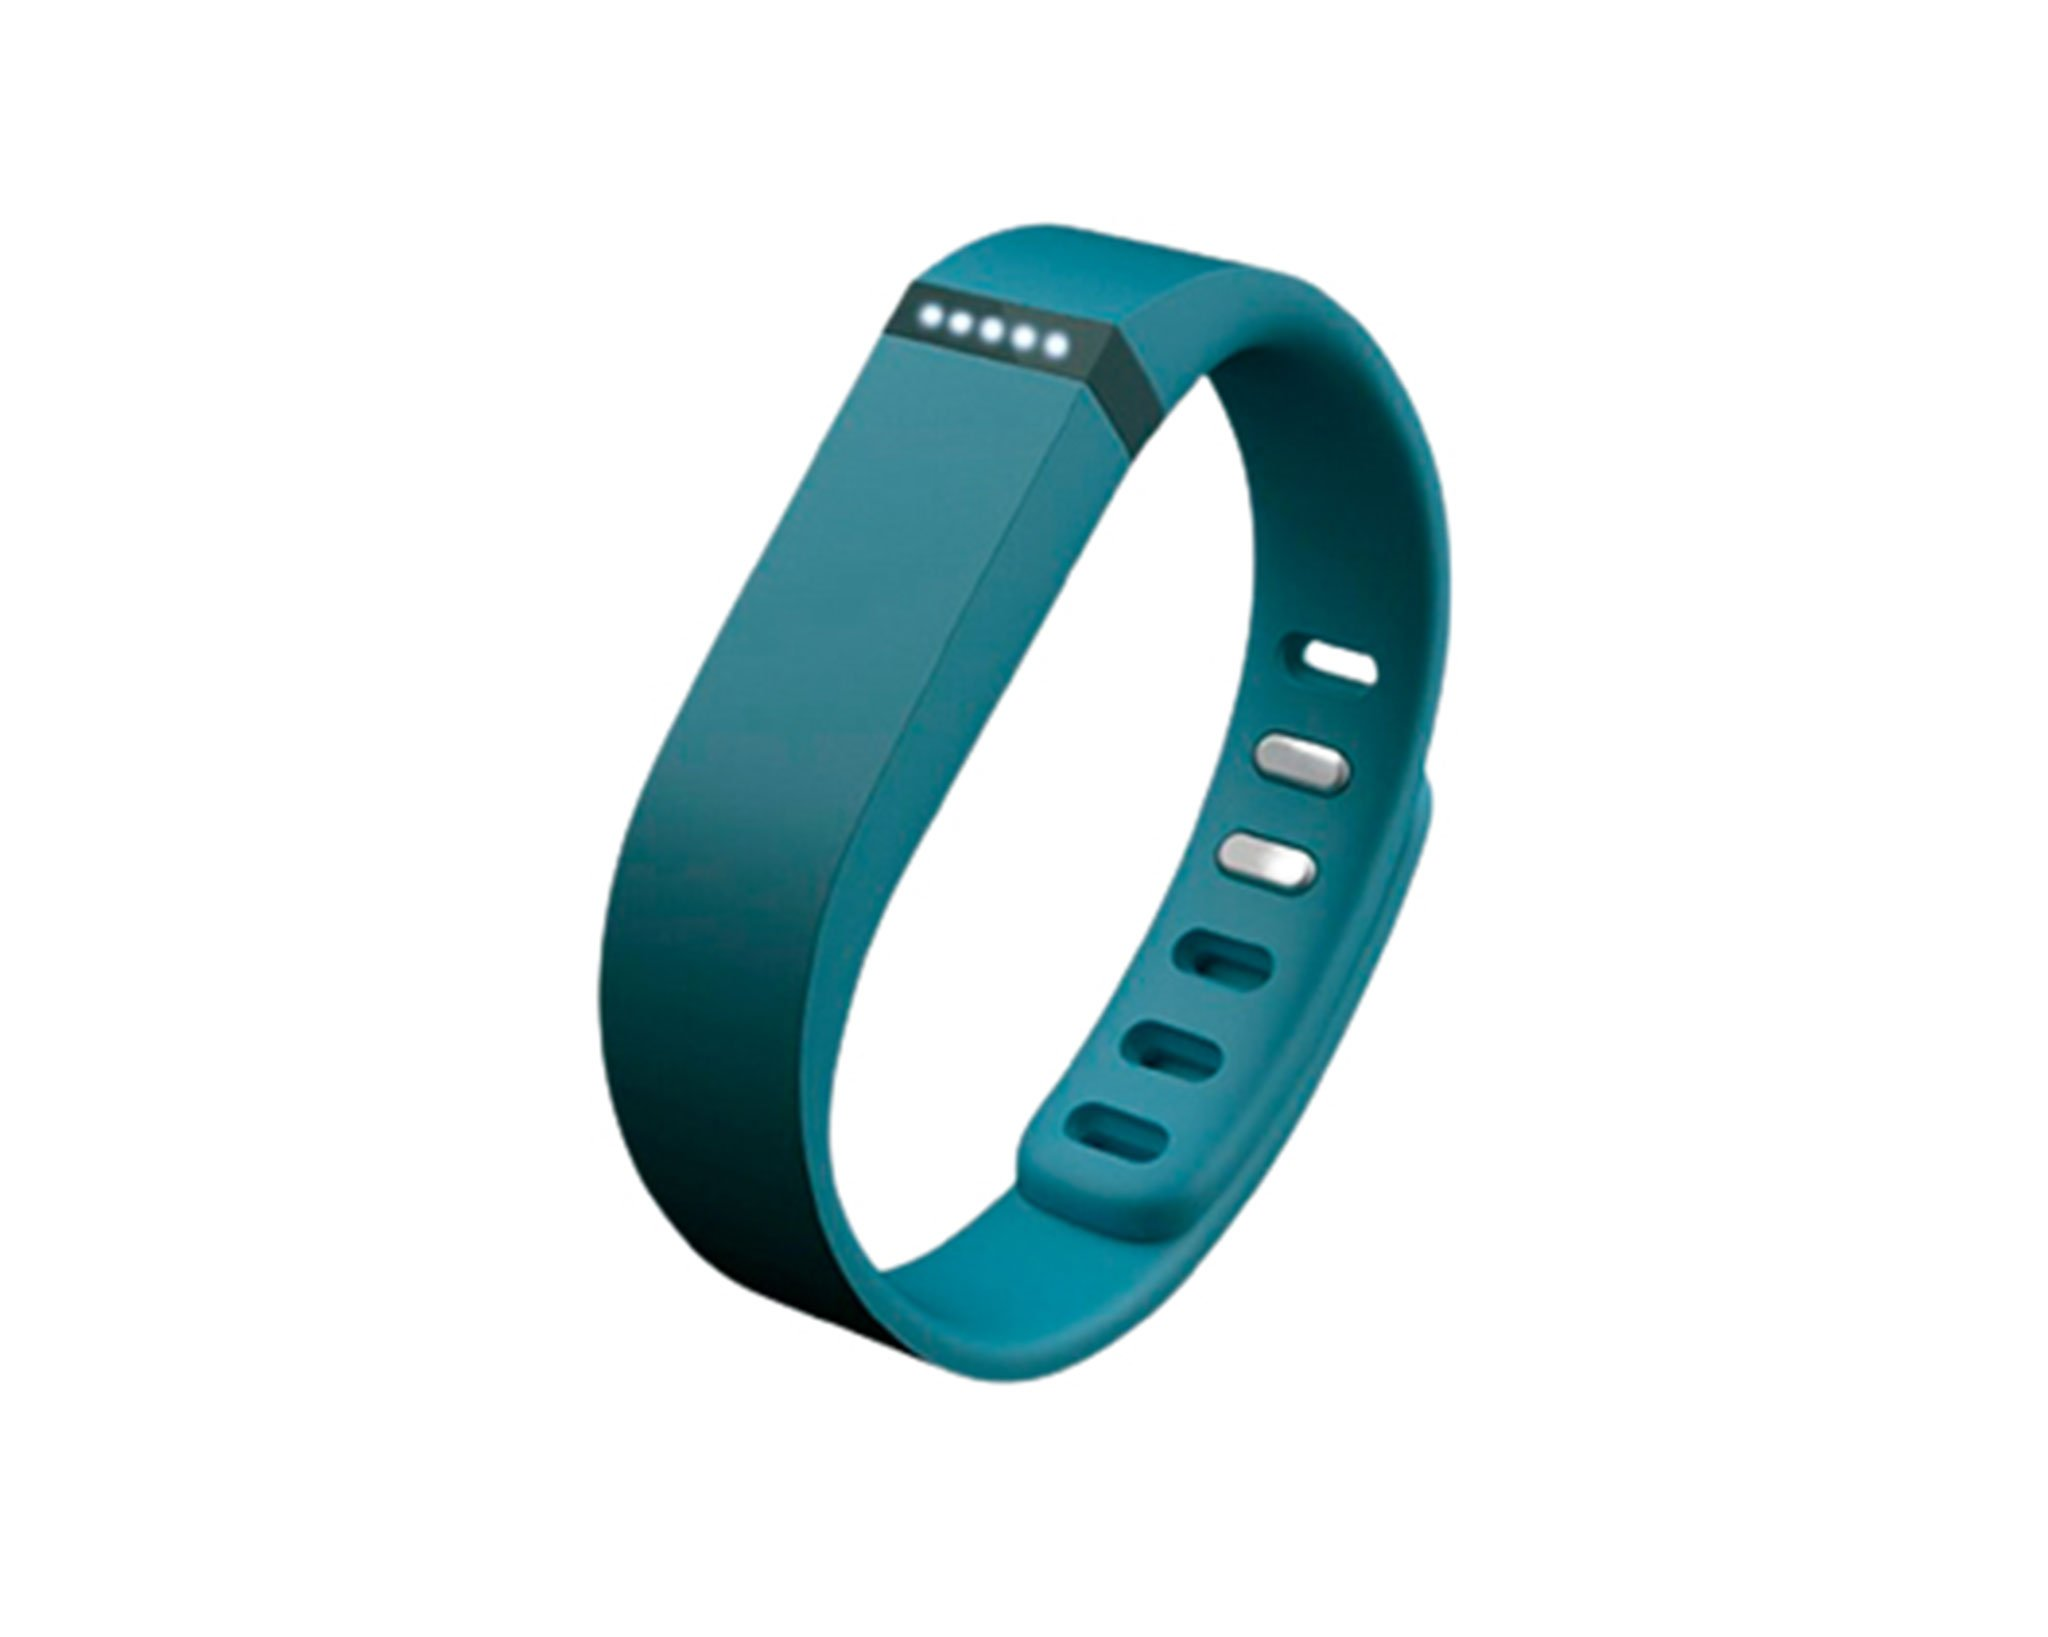 Fitbit Flex physical activity and sleep bracelet - Pineda Appliances